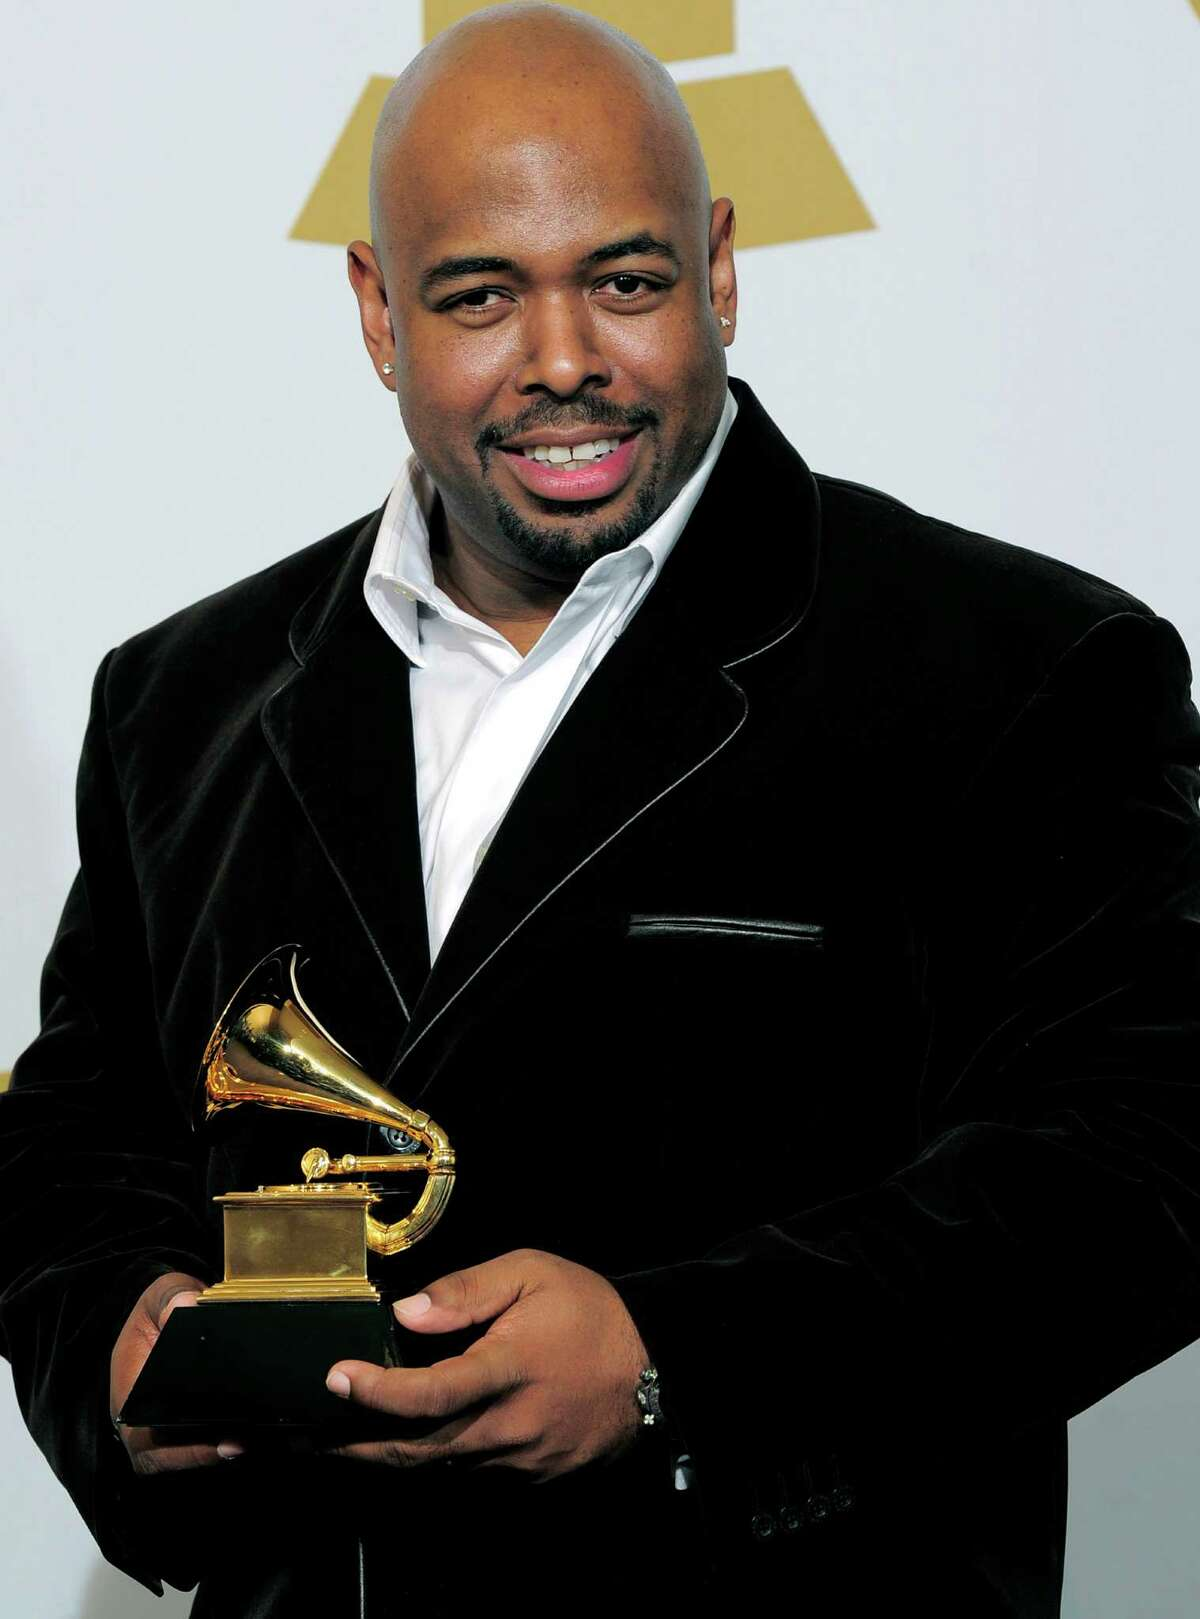 FILE - In this Feb. 12, 2012, file photo, Christian McBride, of the Christian McBride Big Band, poses backstage with the award for best large jazz ensemble for